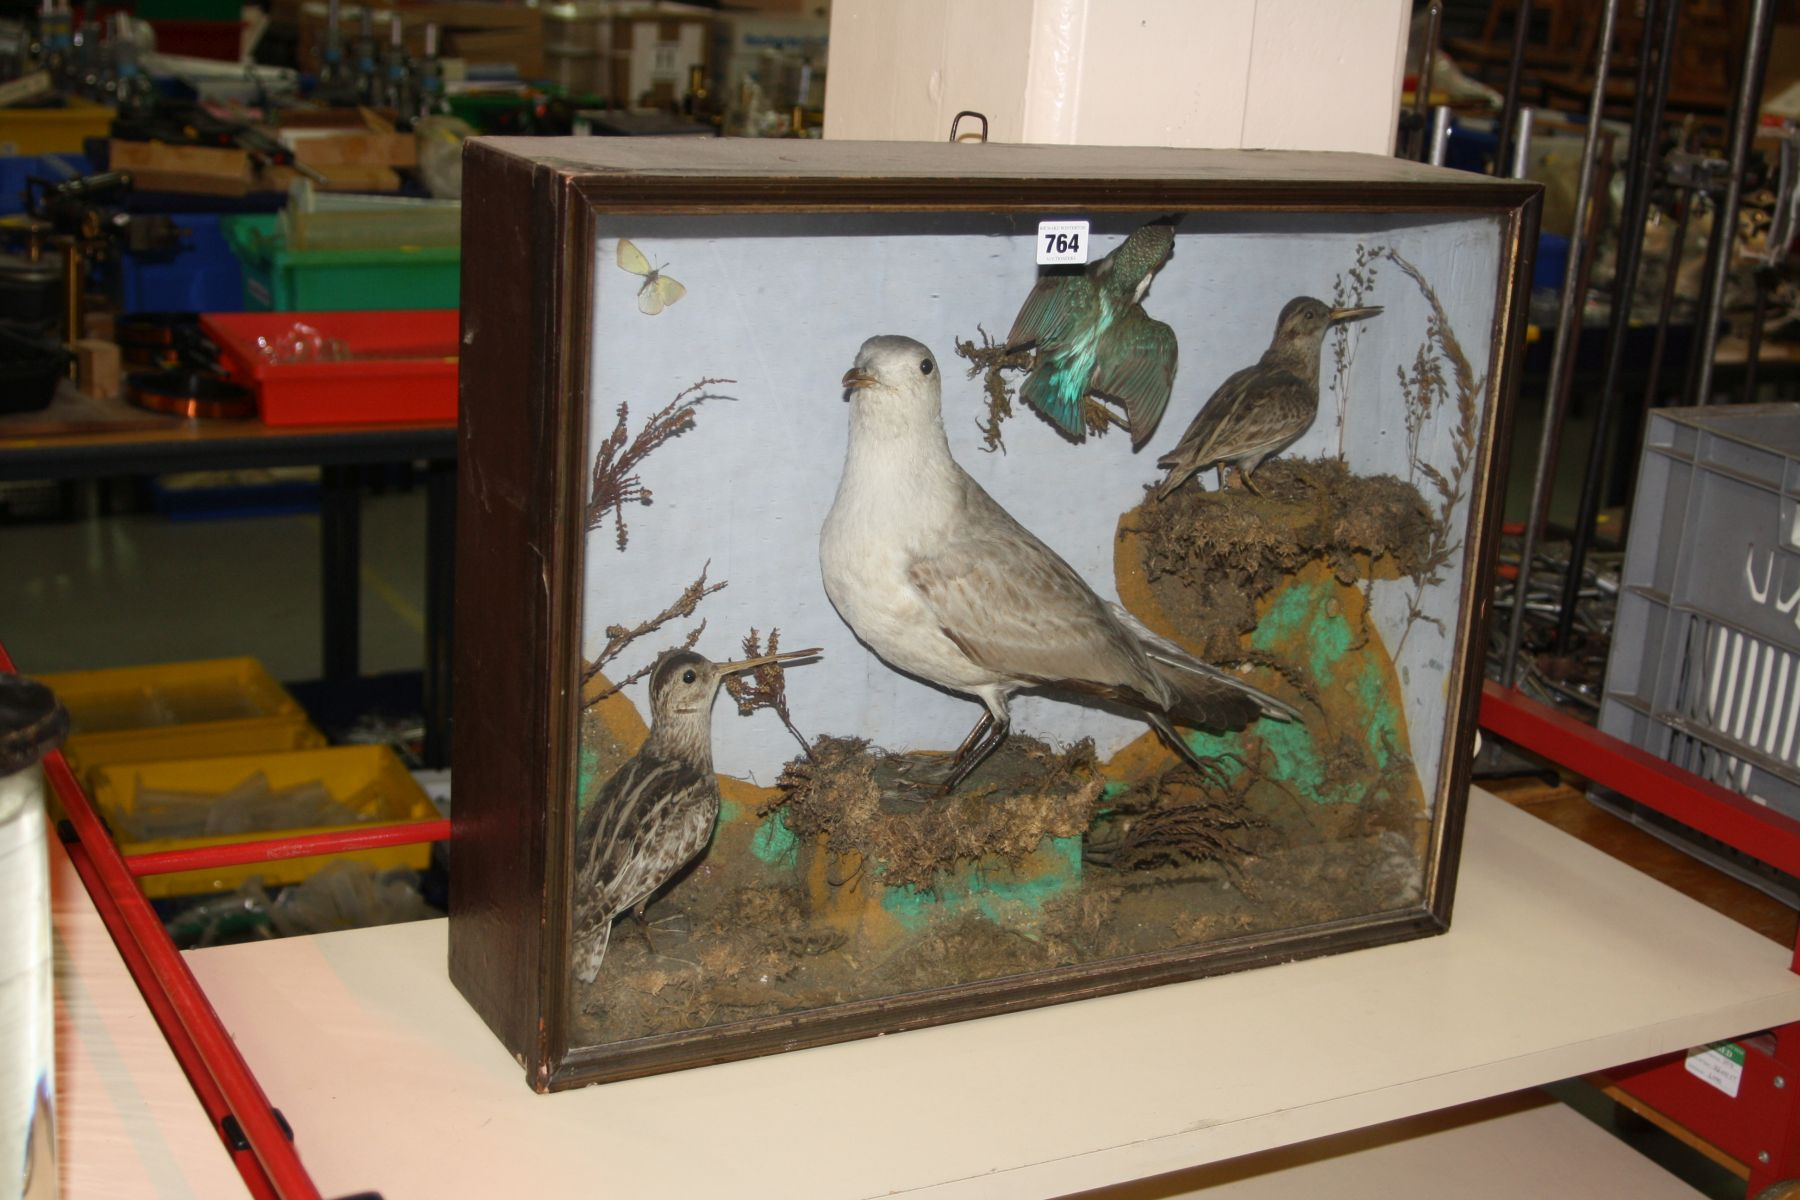 Lot 764 - TAXIDERMY - a Victorian glazed case containing a gull, kingfisher and two other birds in a